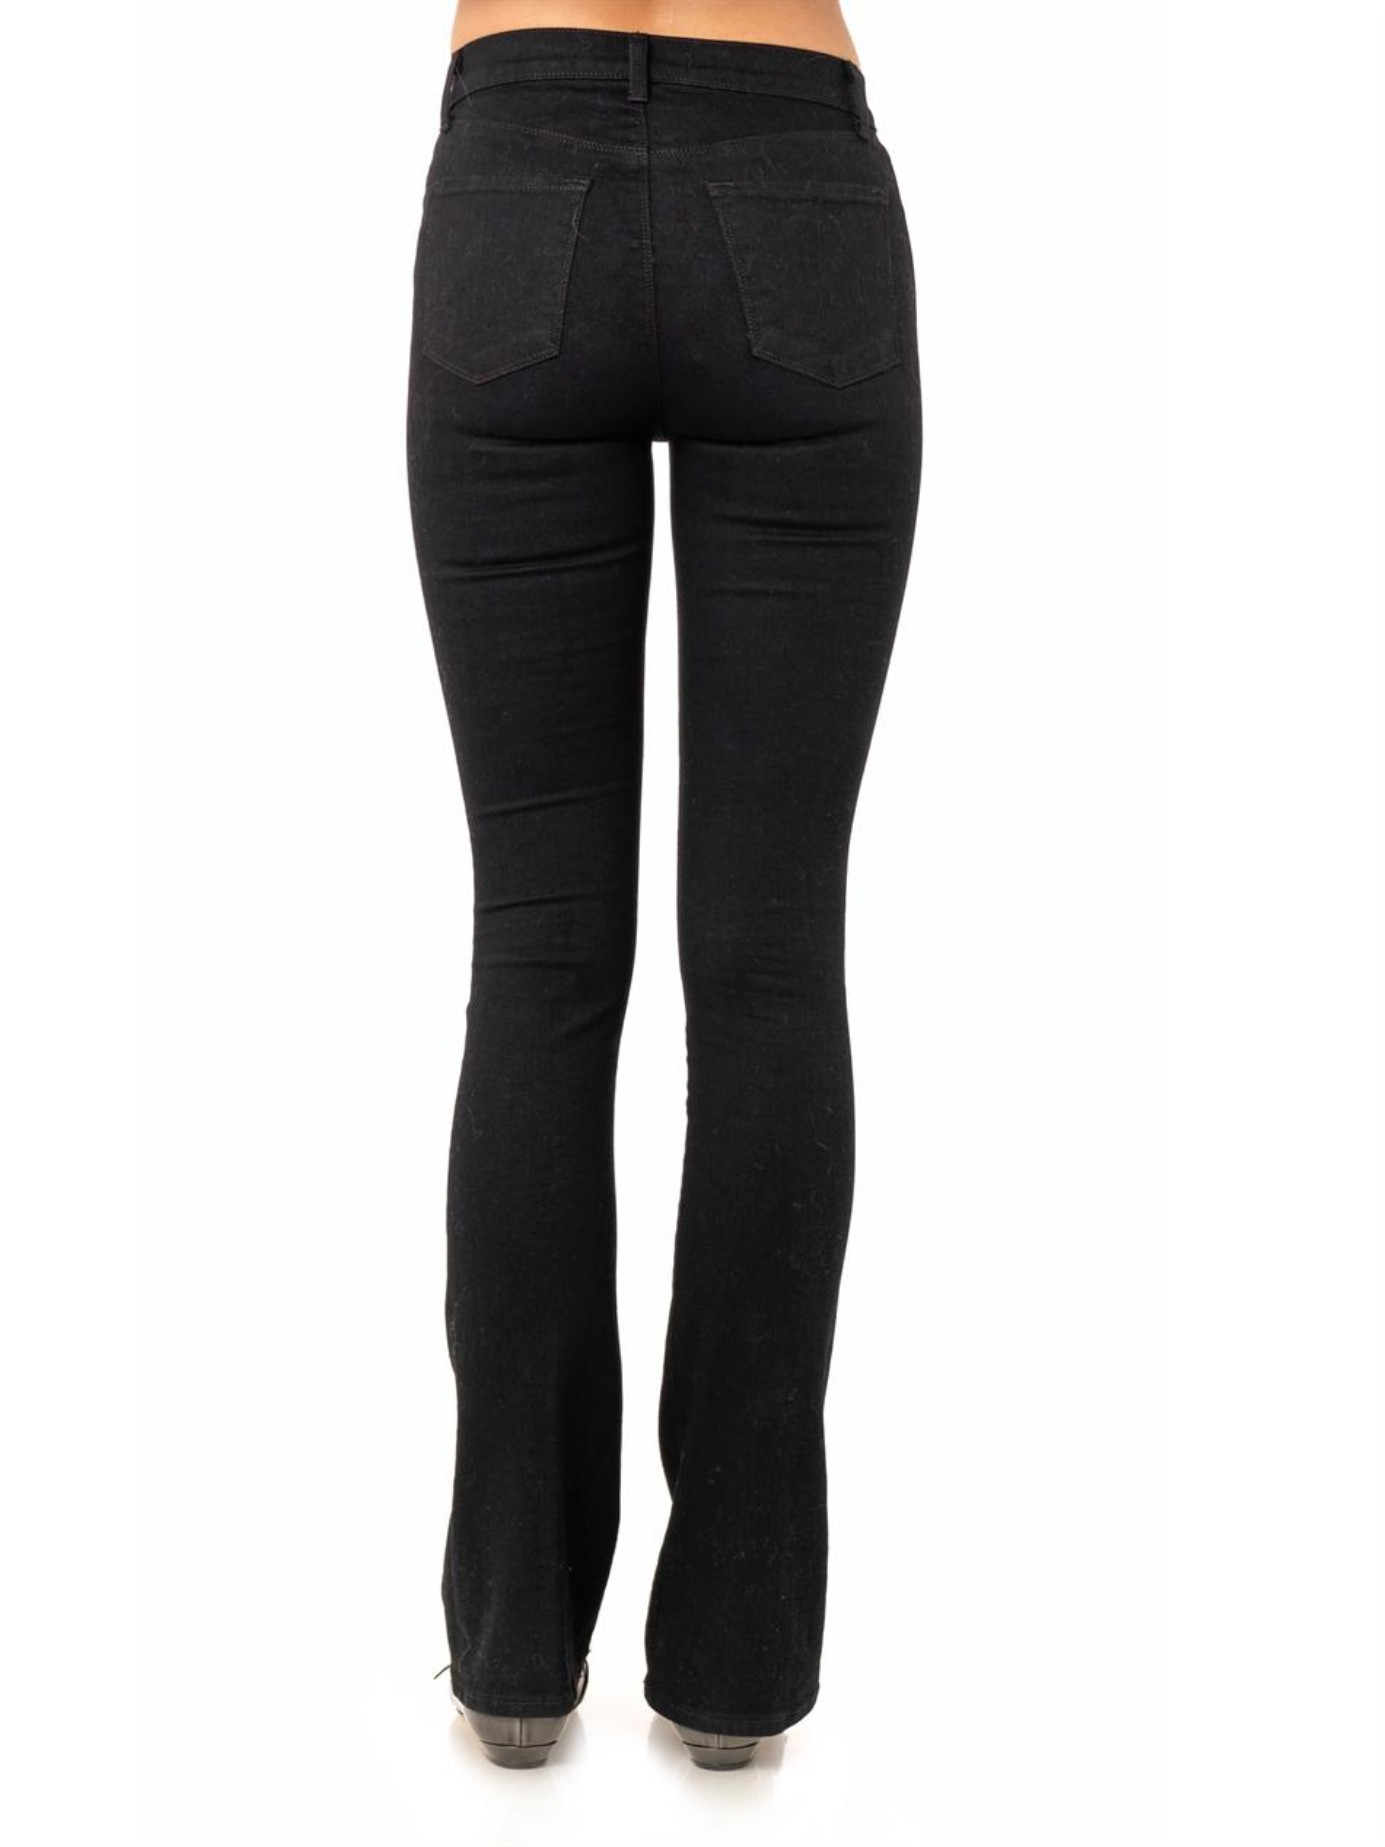 High-rise slim boot cut jeans with a dark indigo wash. GARMOY Women's Slim Fit High-Waisted Stretch Flared Jeans With Button. by GARMOY. $ - $ $ 29 $ 39 99 Prime. FREE Shipping on eligible orders. Some sizes/colors are Prime eligible. out of 5 stars Product Features.